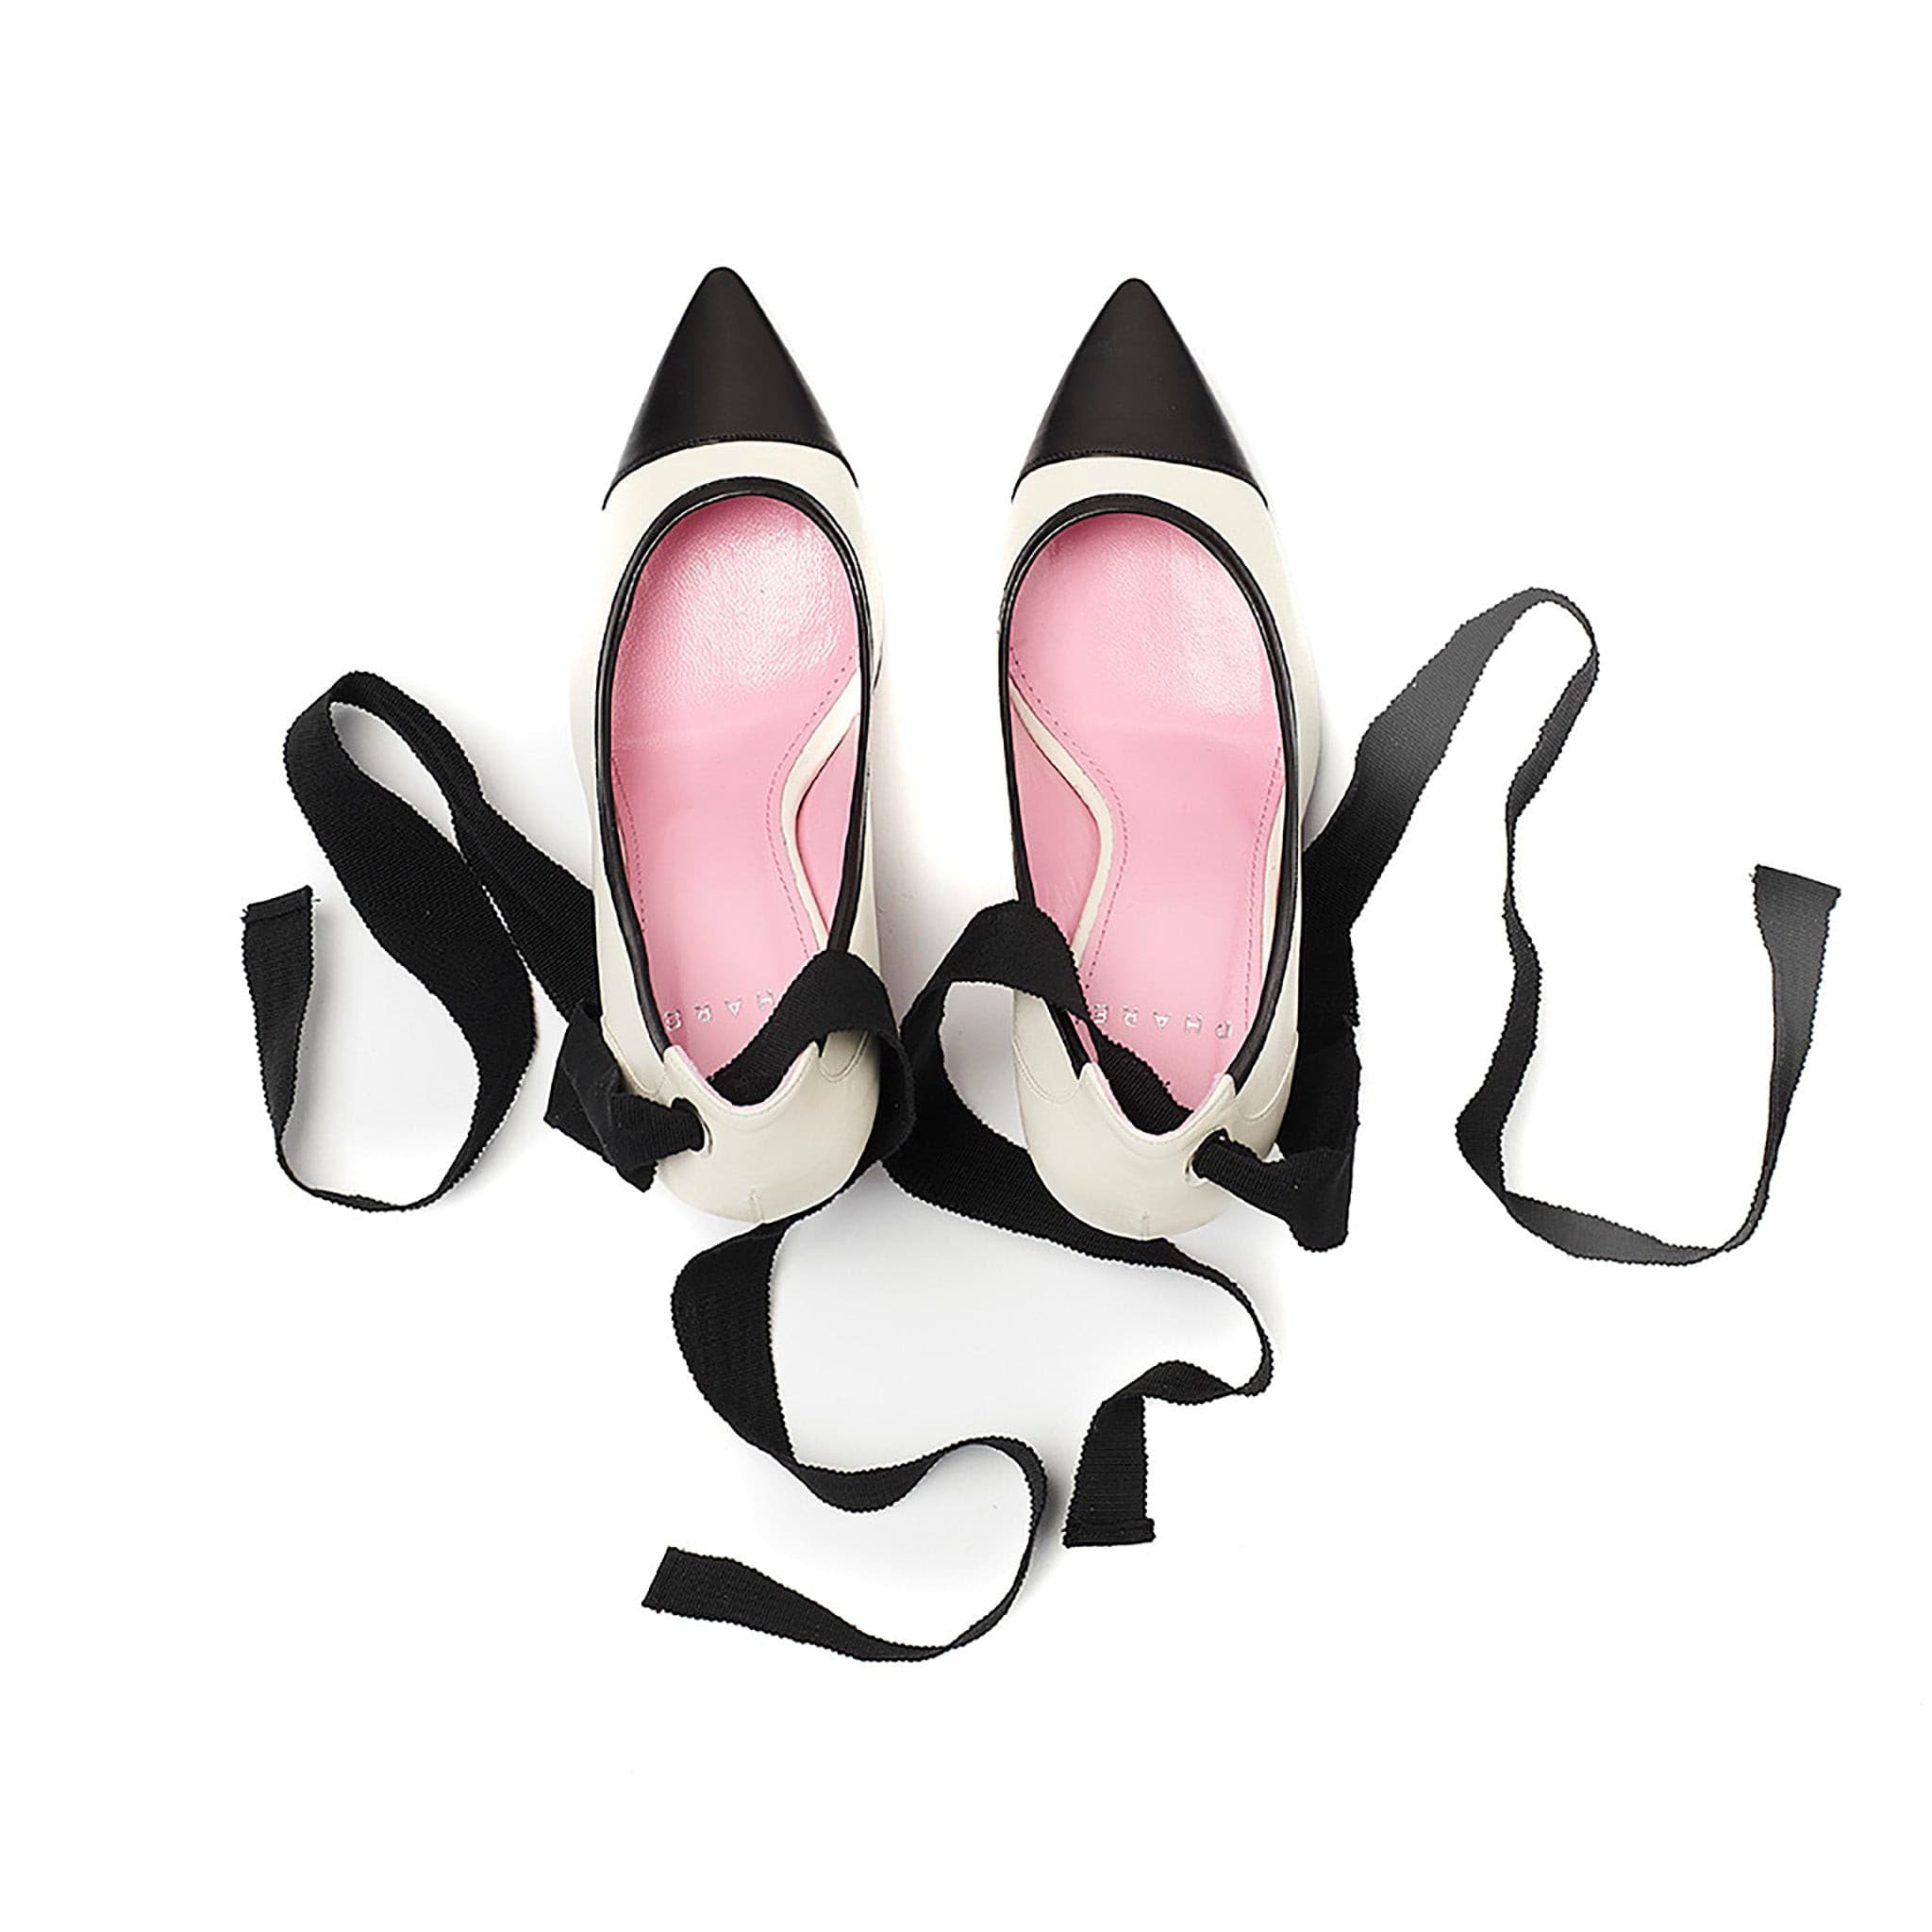 Ribbon tie pump in cream/black leather top view